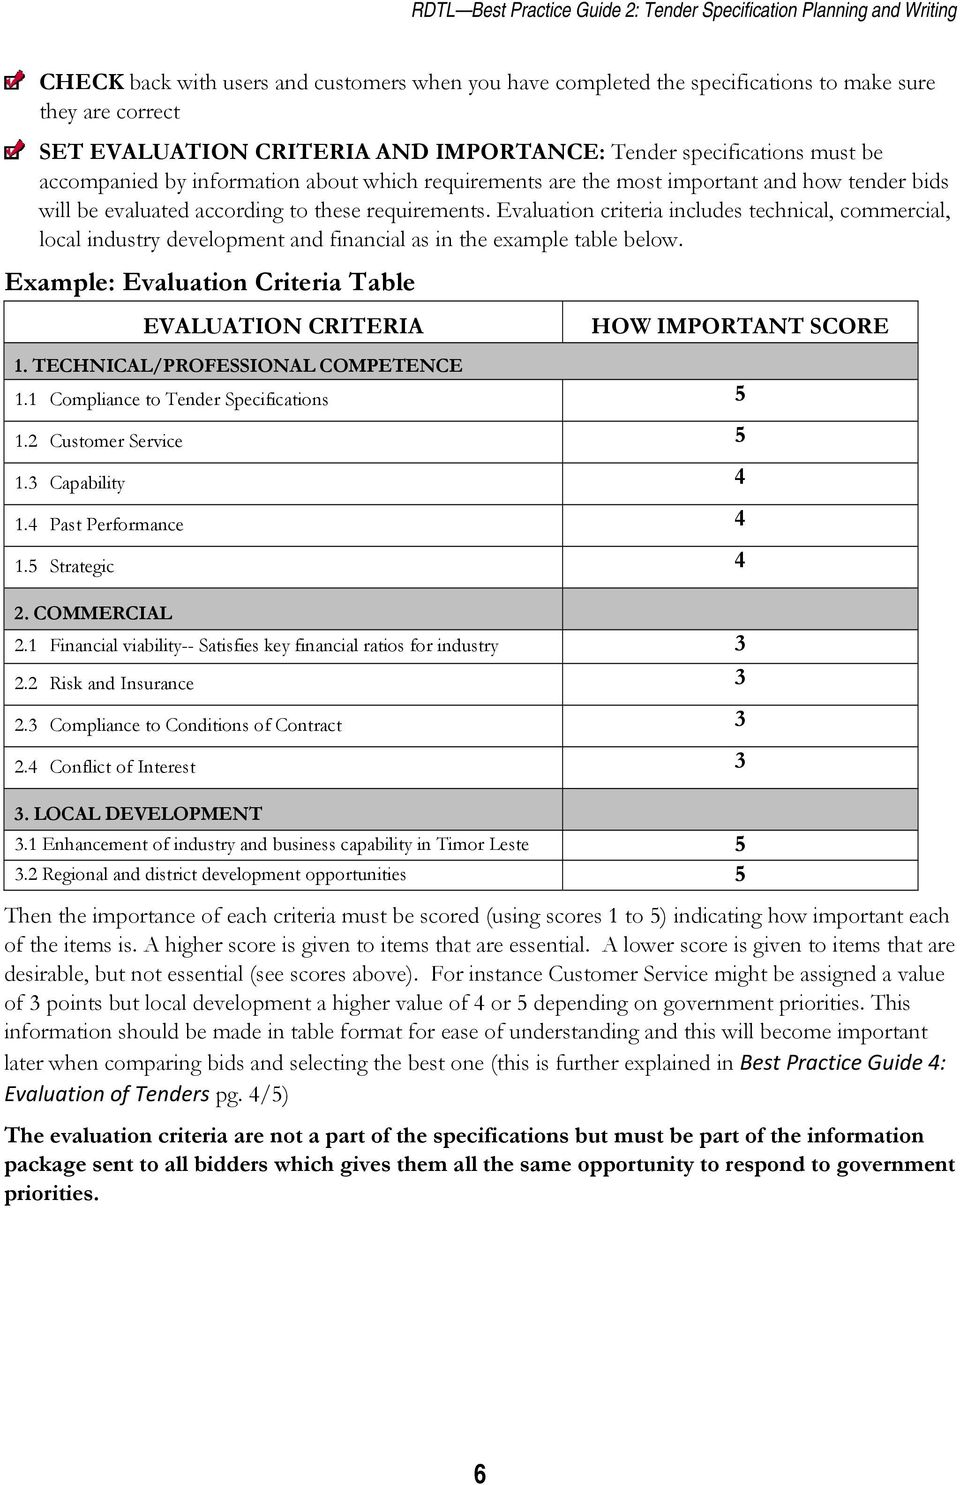 Evaluation criteria includes technical, commercial, local industry development and financial as in the example table below.